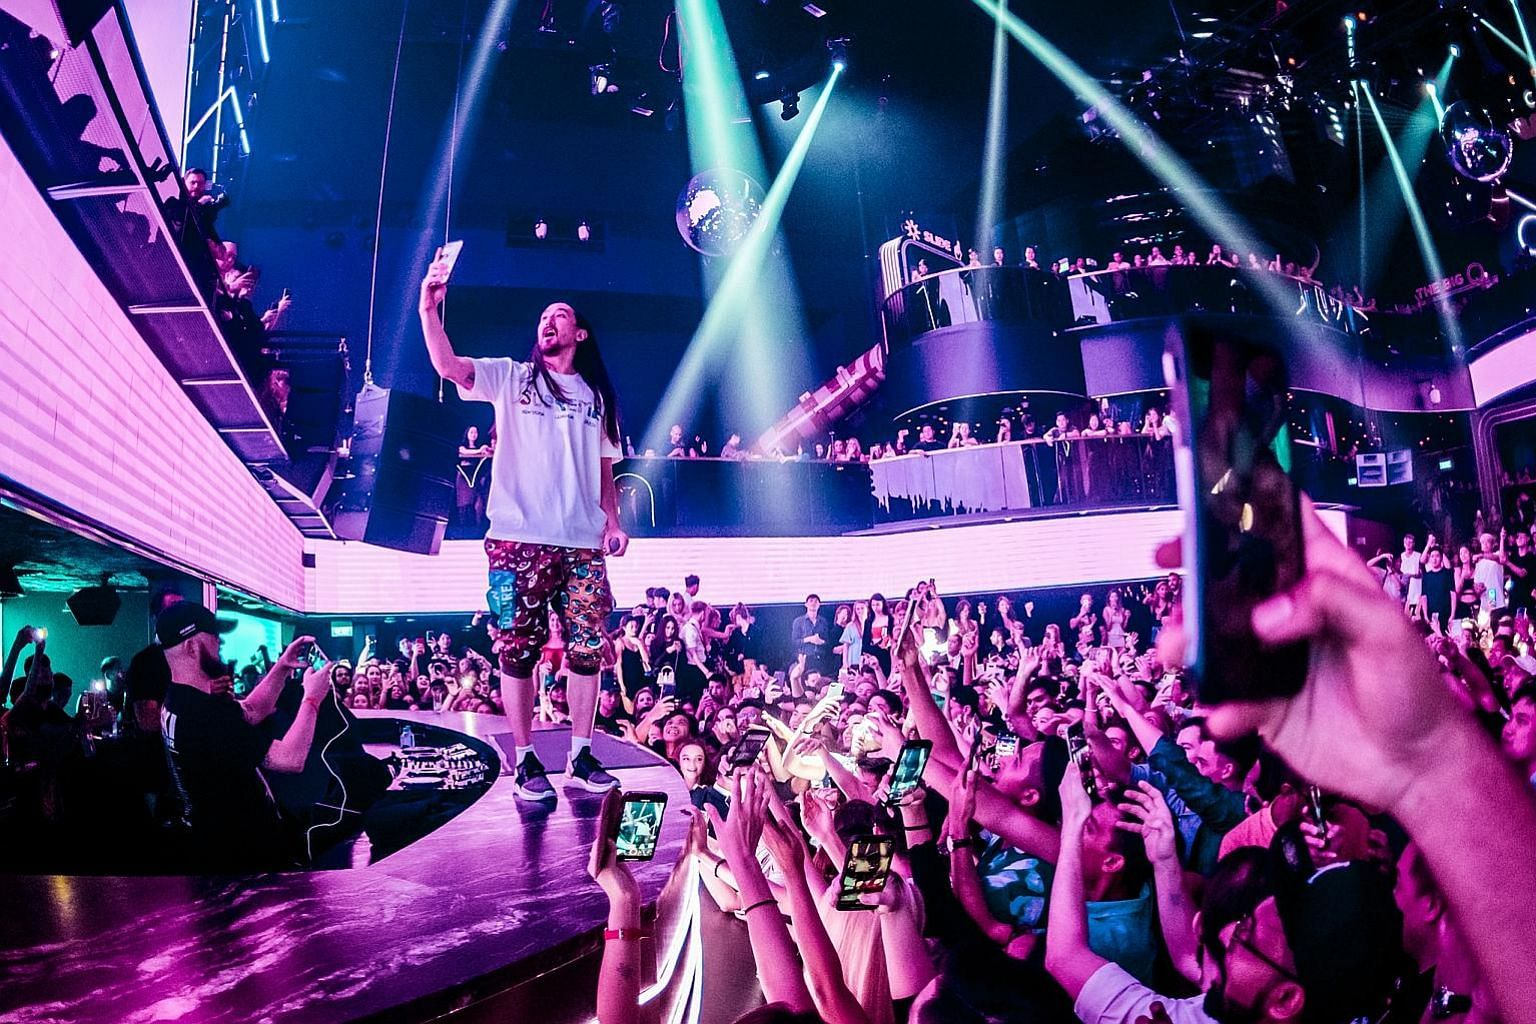 Marquee Singapore's birthday bash will be headlined by top names in the dance music world - DJs Steve Aoki (left), Nicky Romero and Andrew Rayel - who will be spinning back to back from their own homes and studios.